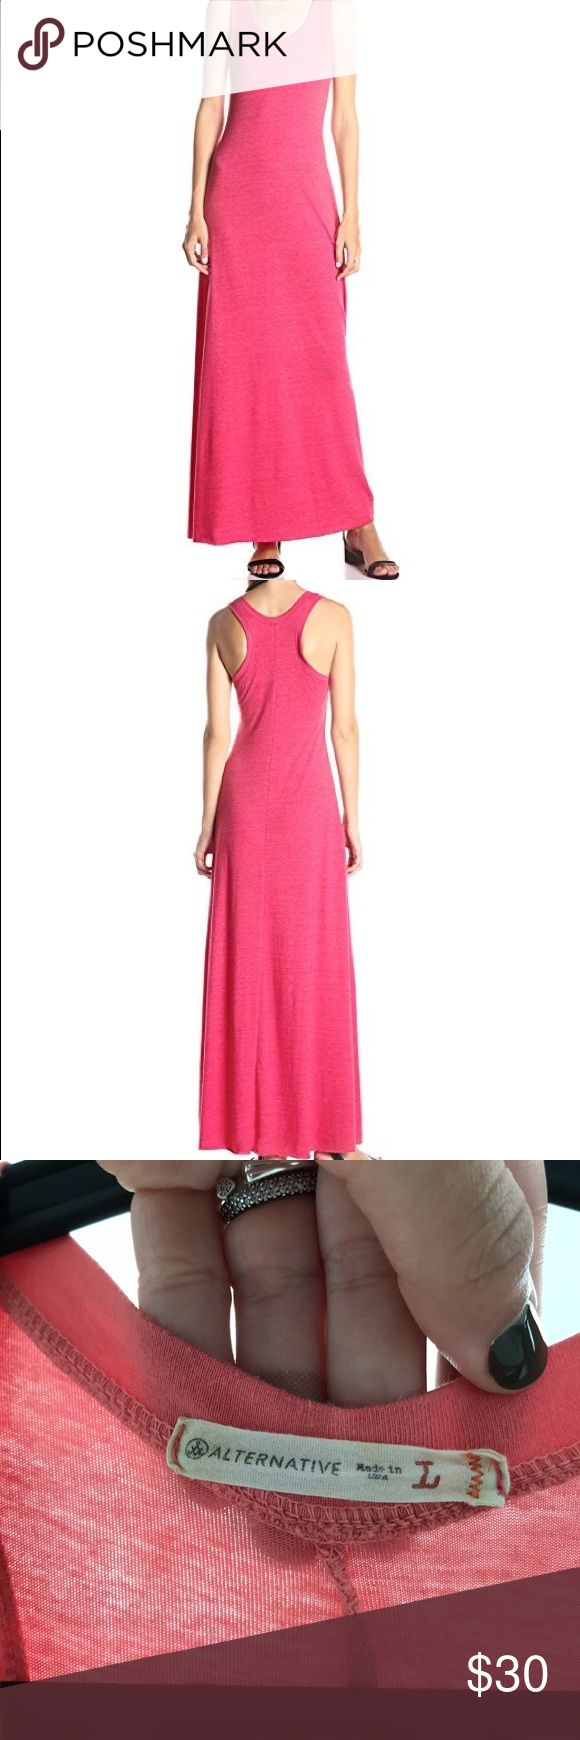 Alternative Maxi Dress Racerback maci dress, sleeveless scoop/neck long dress. Slide slits that goes up to the thigh. Very comfy 🌸the color es pink/coral, literally new!!! Alternative Dresses Maxi